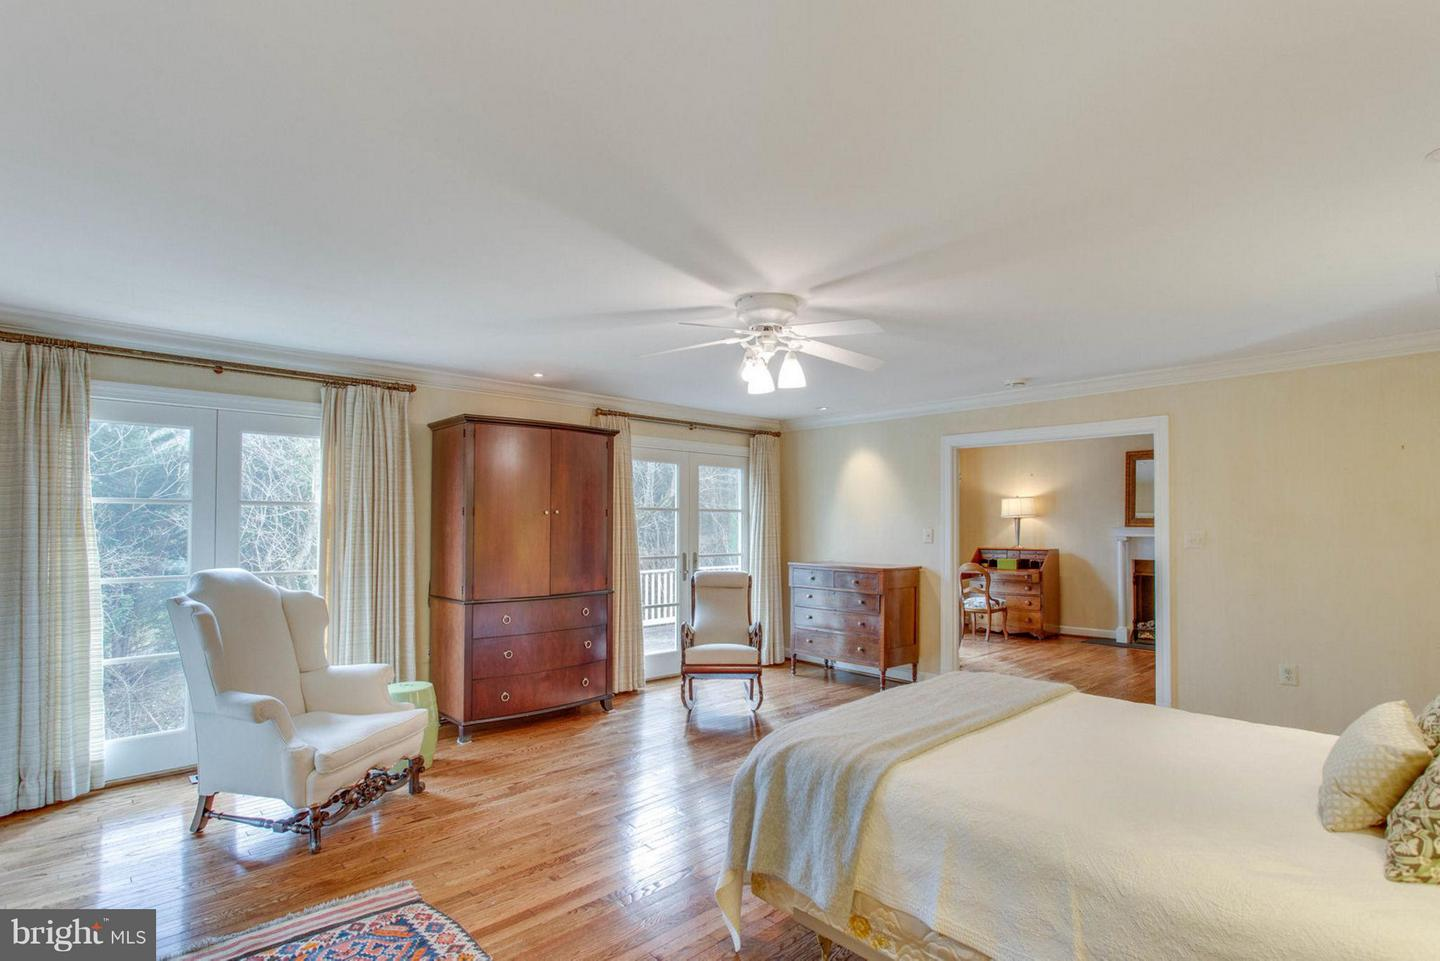 Additional photo for property listing at 5702 Cricket Pl 5702 Cricket Pl Mclean, Virginia 22101 United States